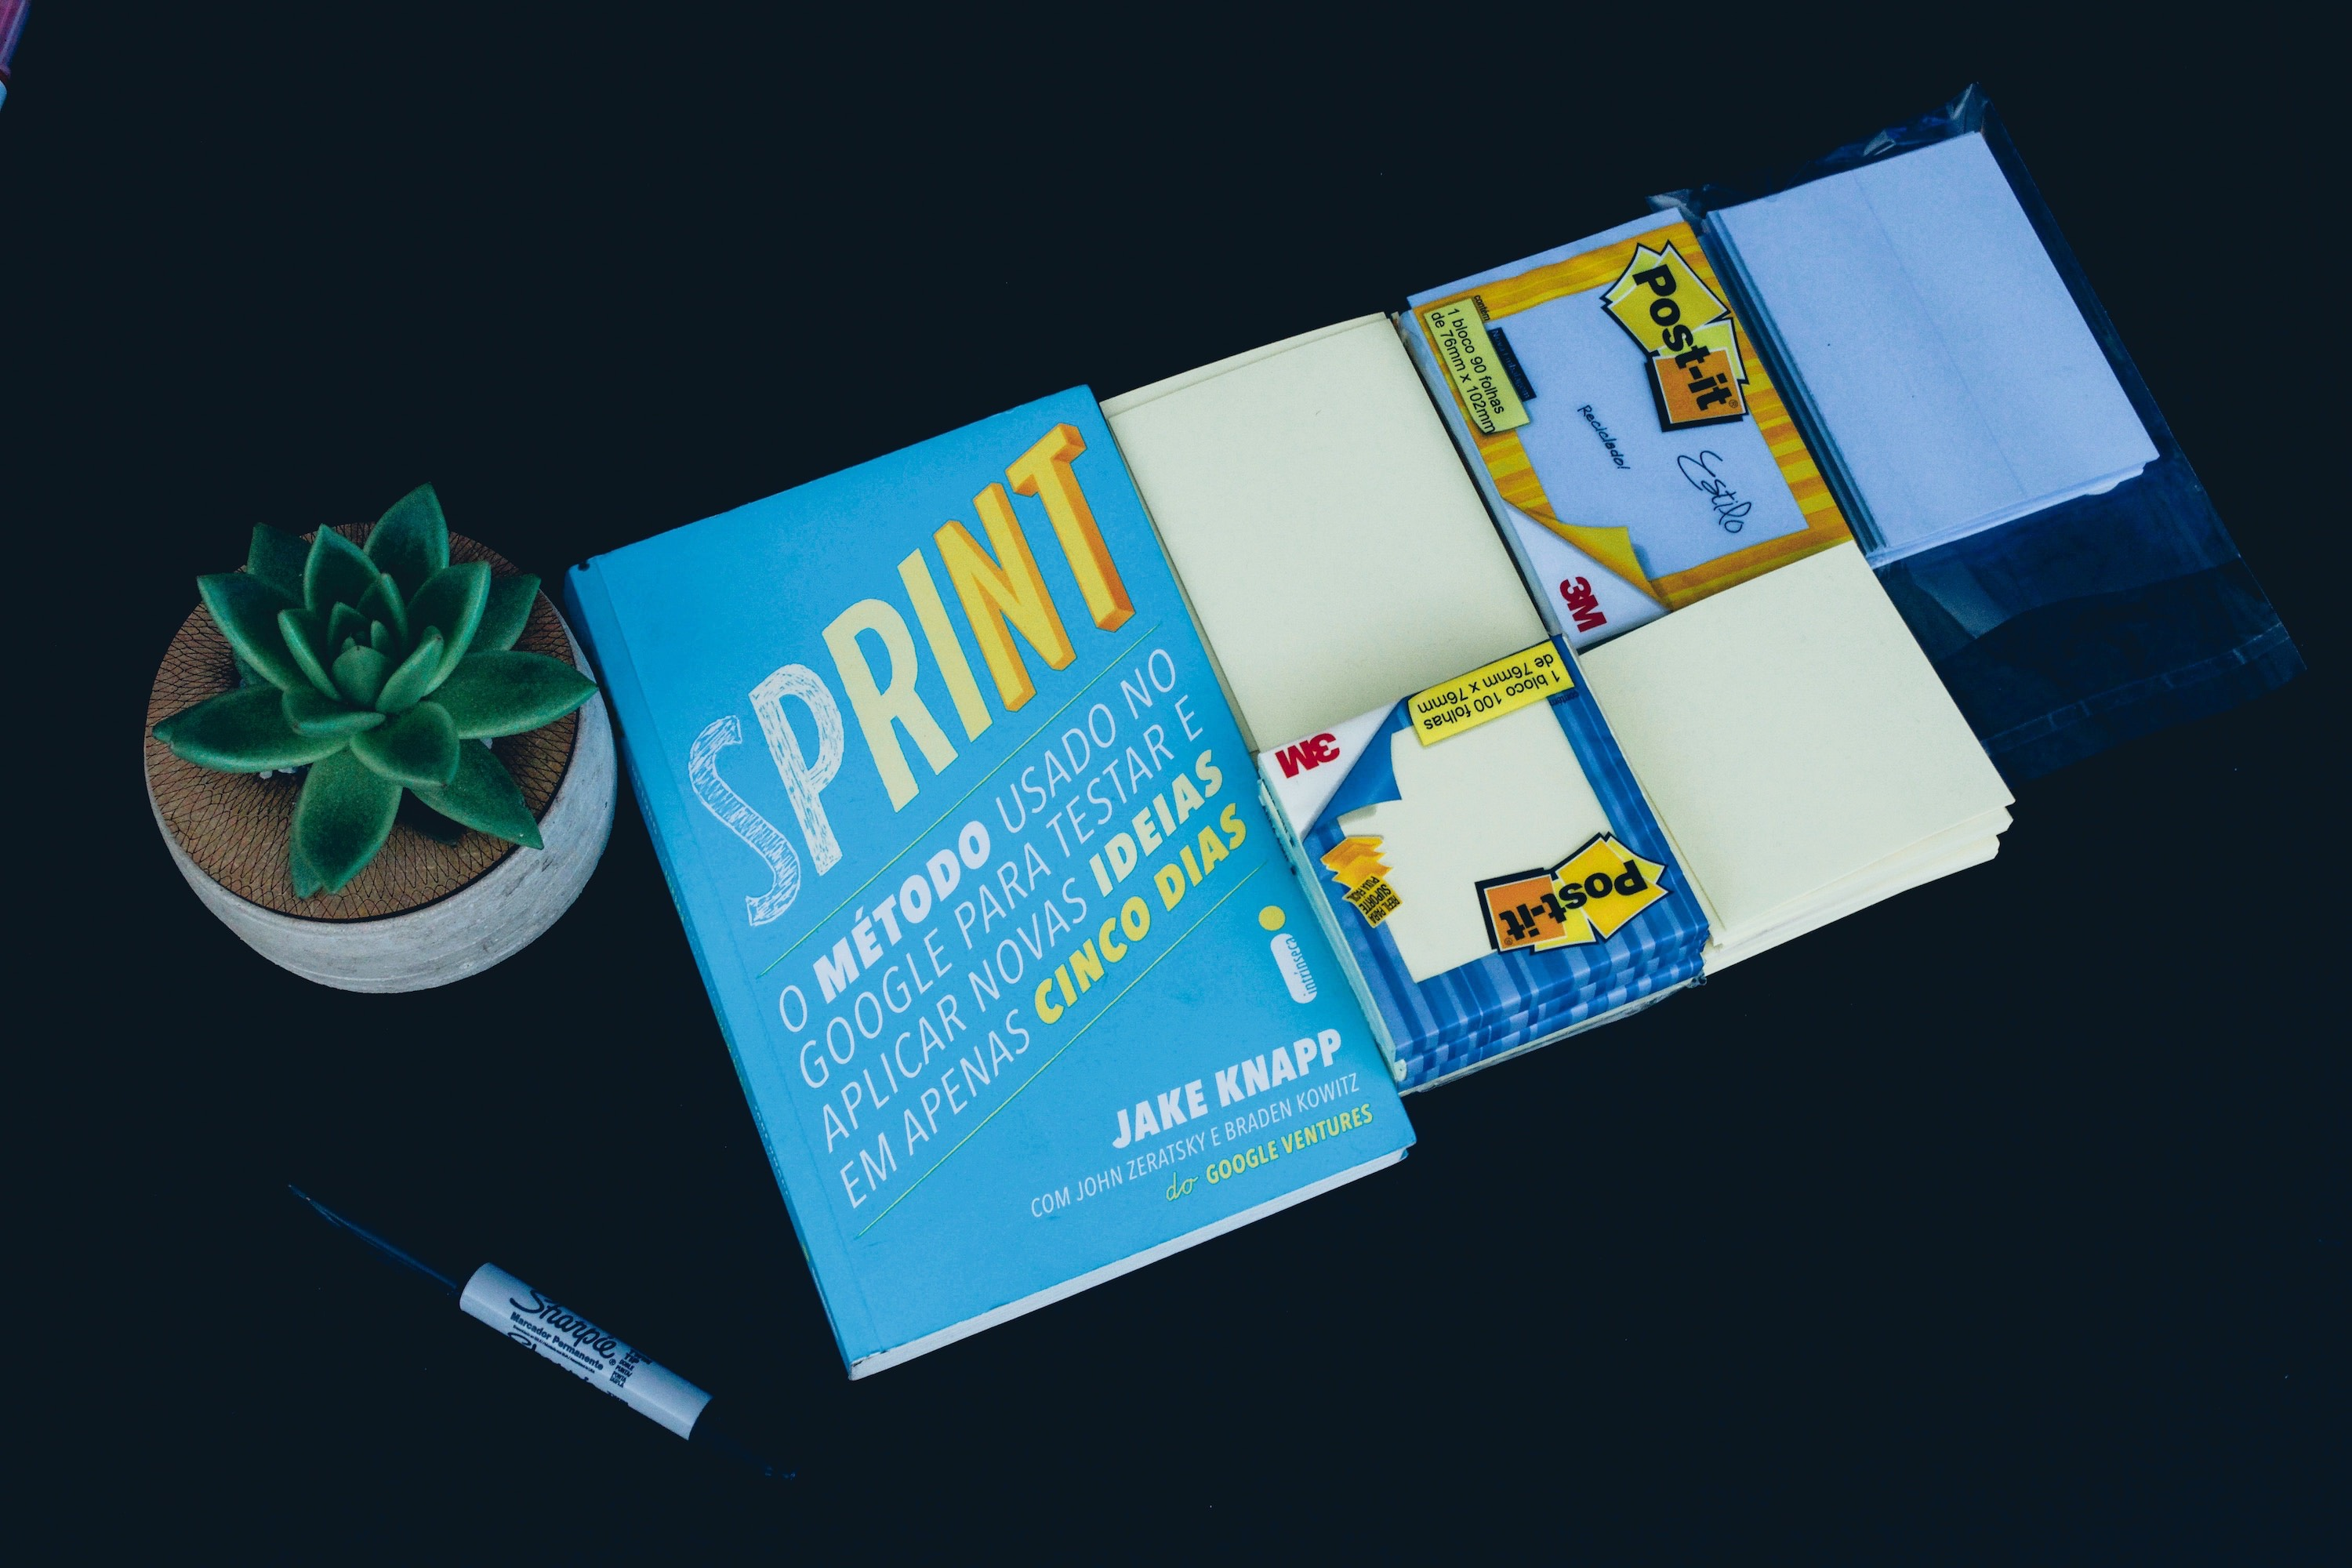 Design sprints book